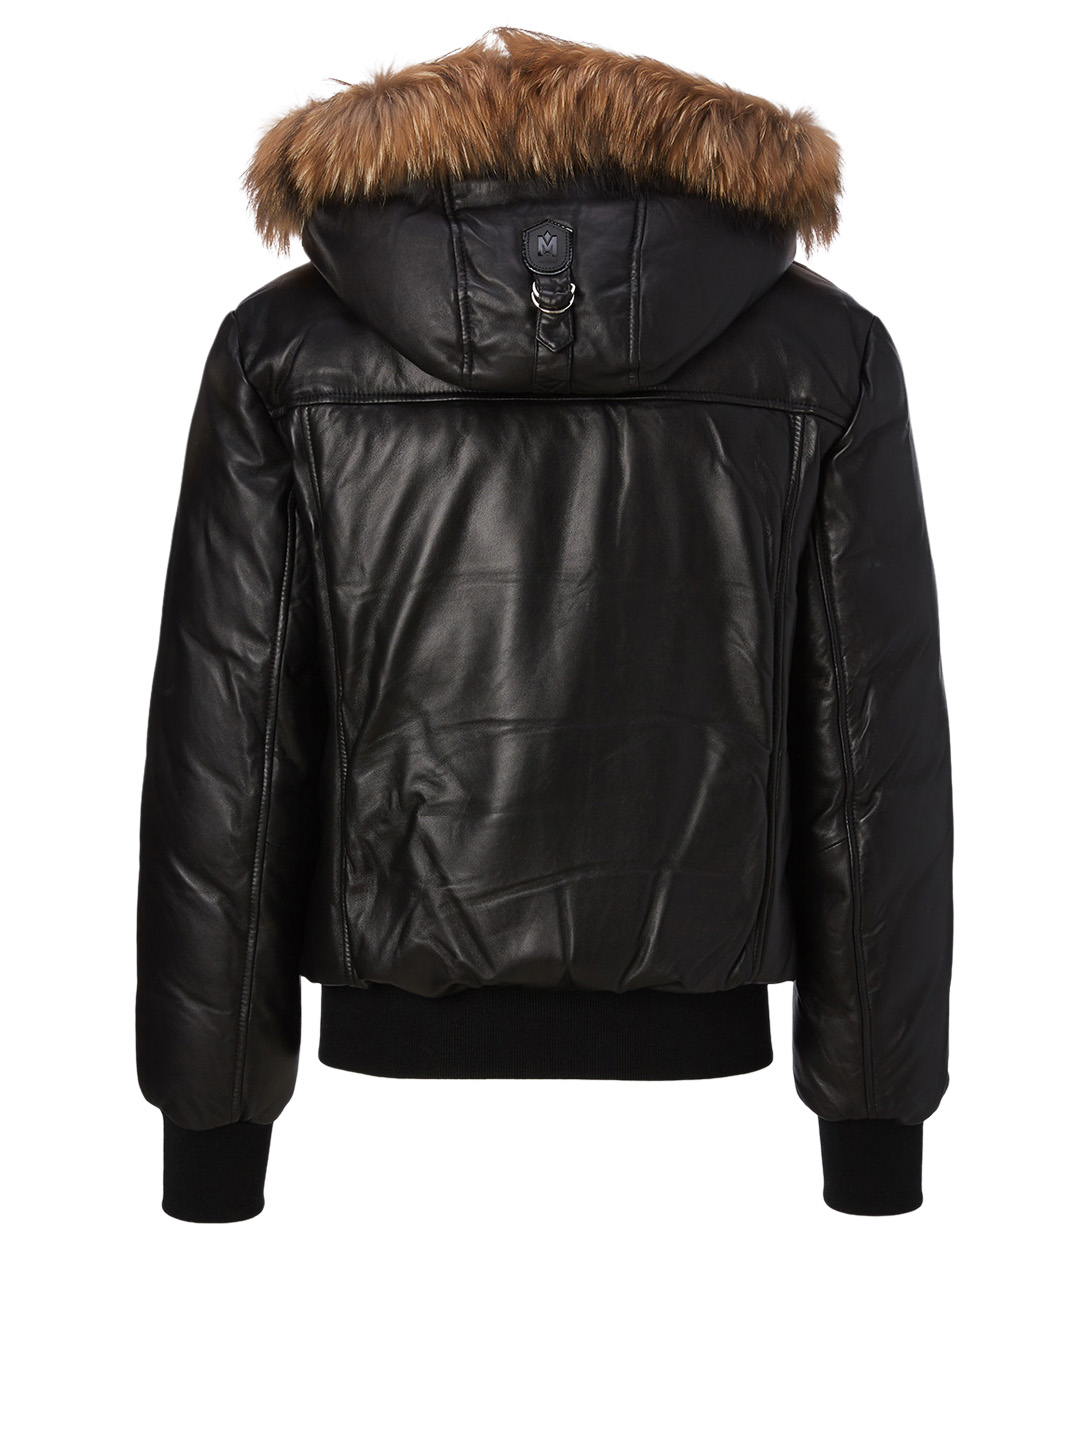 MACKAGE Glen Leather Down Bomber Jacket with Fur Hood Men's Black